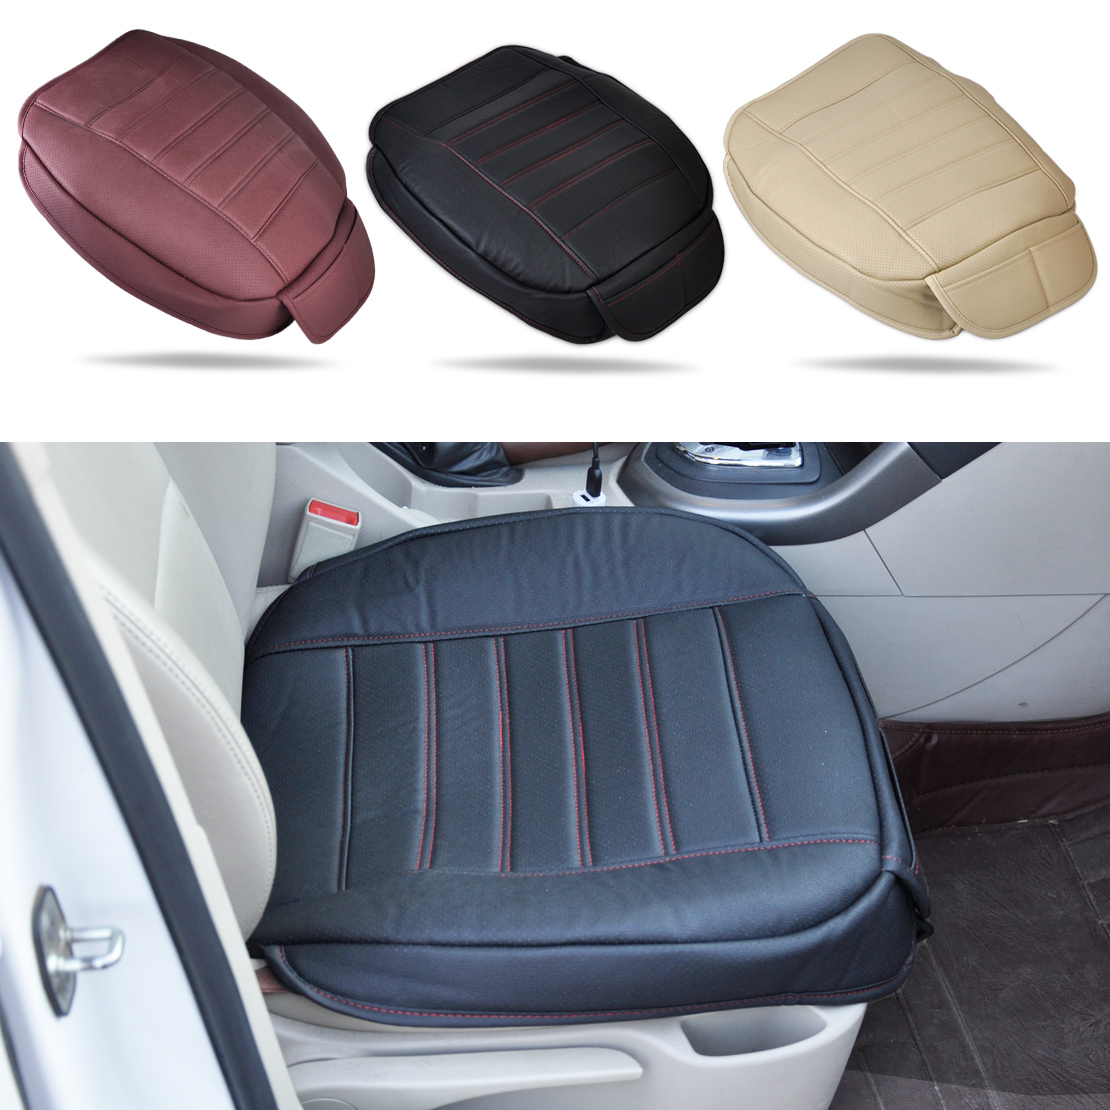 beler universal pu leather car interior front seat cushion cover seatpad mat for vw audi bmw. Black Bedroom Furniture Sets. Home Design Ideas